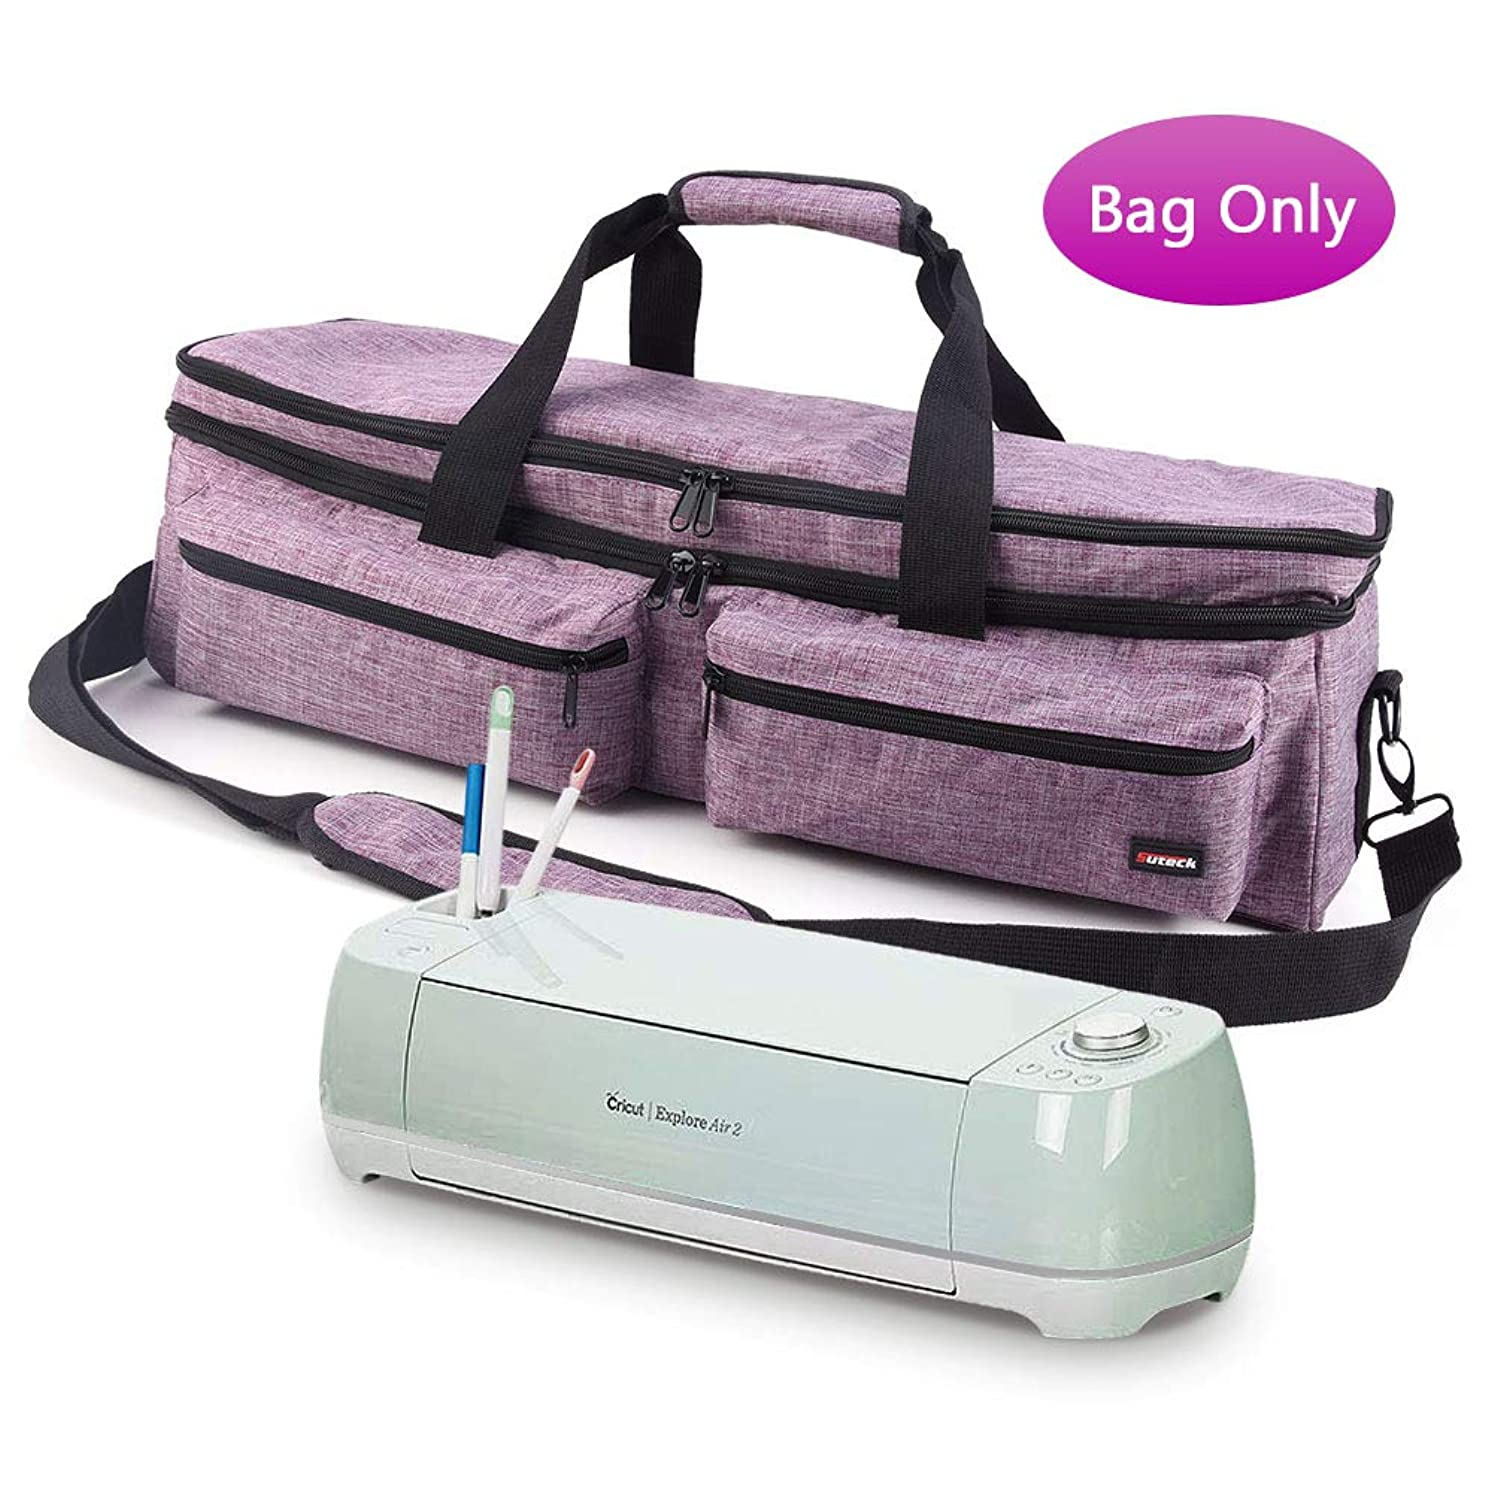 Craft Double-Layer Tote Bag Compatible with Cricut Explore Air, Air 2, Maker and Silhouette Cameo 3, Tool Carrying Case for Cutting Machine and Supplies Travel Bag, Purple